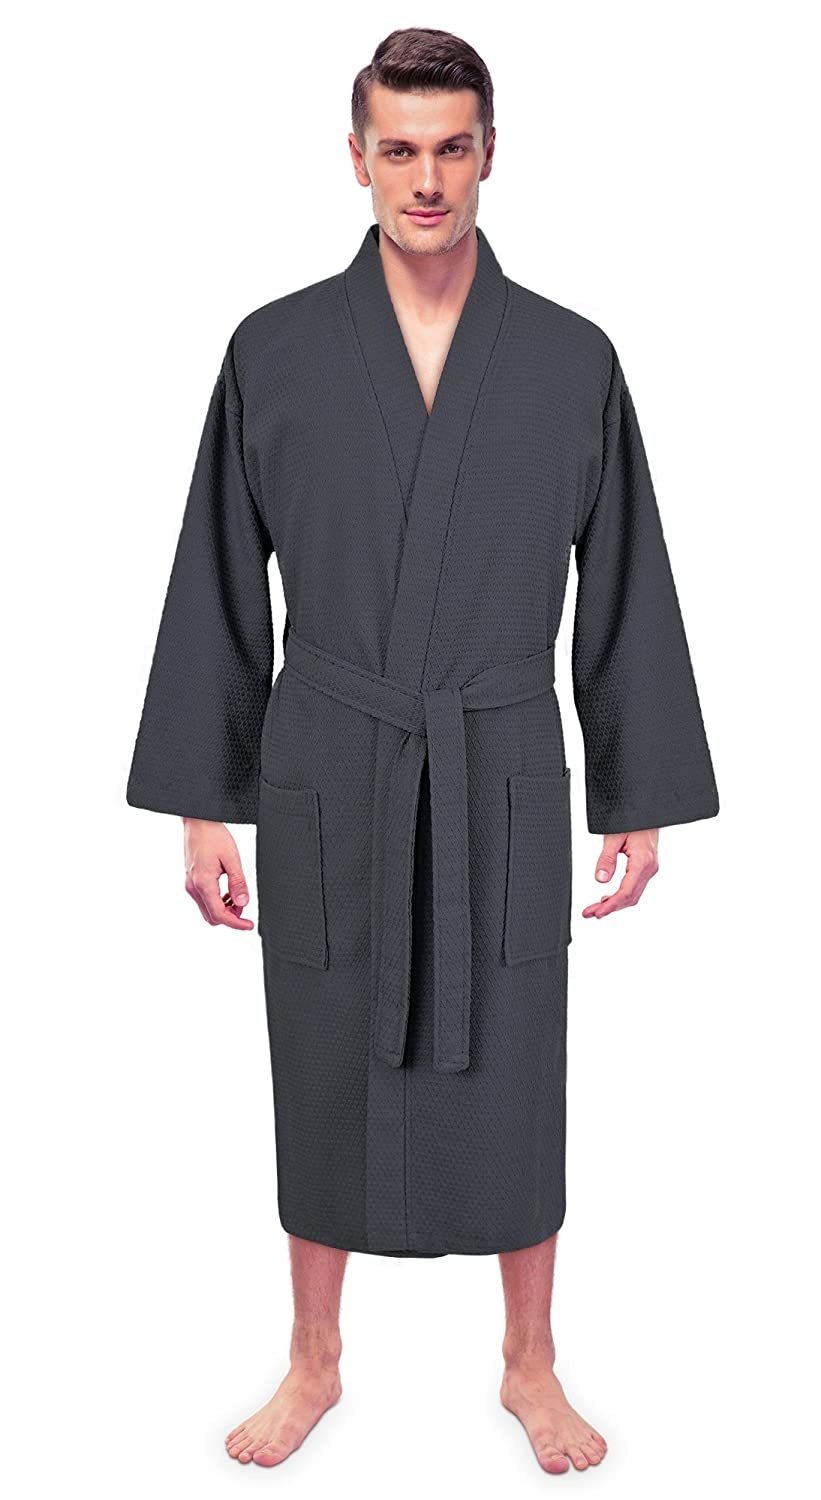 Turkuoise Men's 100% Premium Turkish Cotton Lightweight Spa Bathrobe Made in Turkey